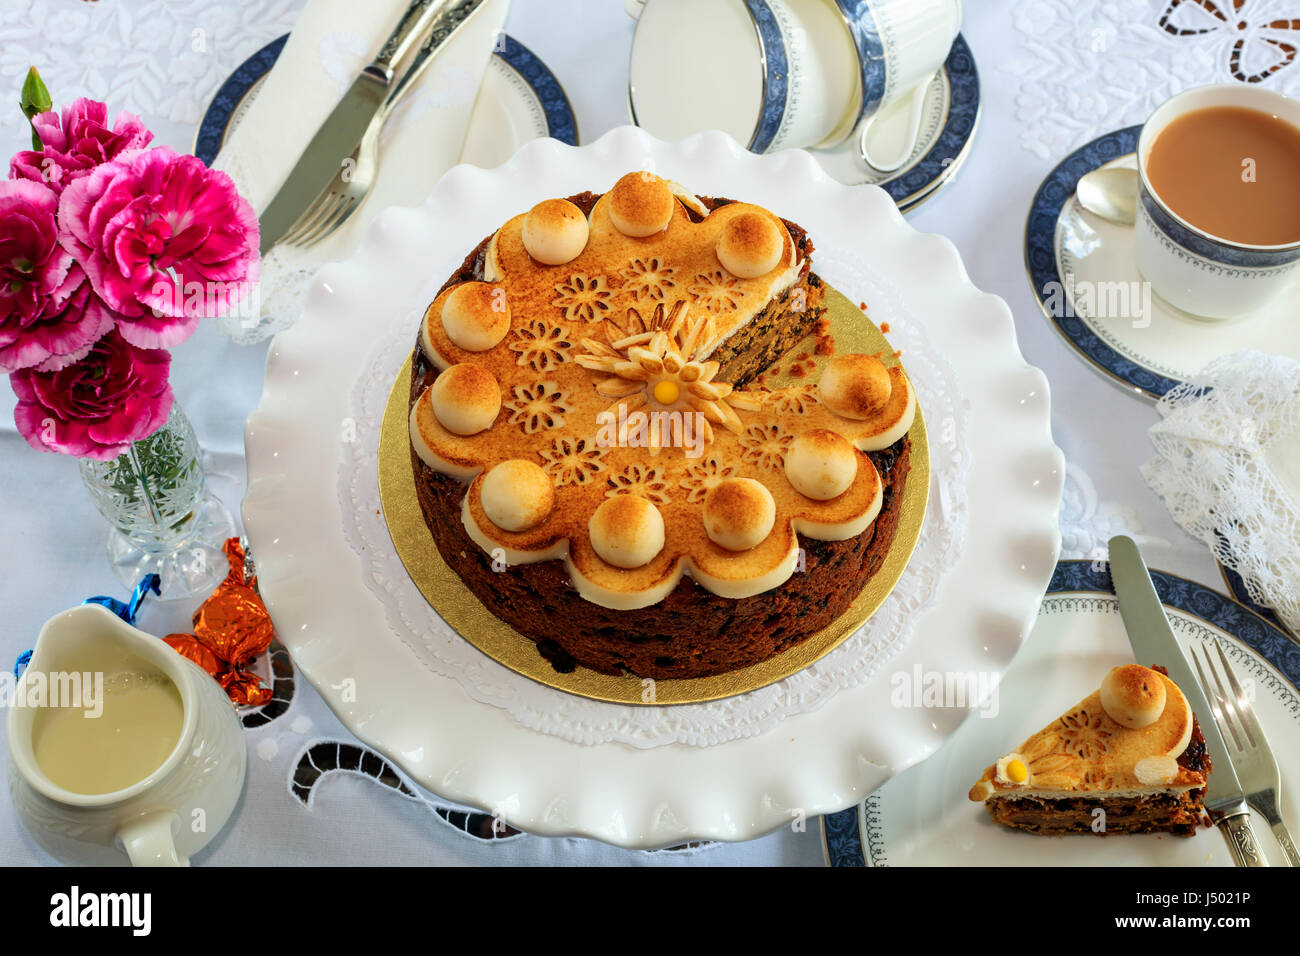 Simnel cake - traditional Easter fruit cake decorated with marzipan on a table set for tea. Stock Photo